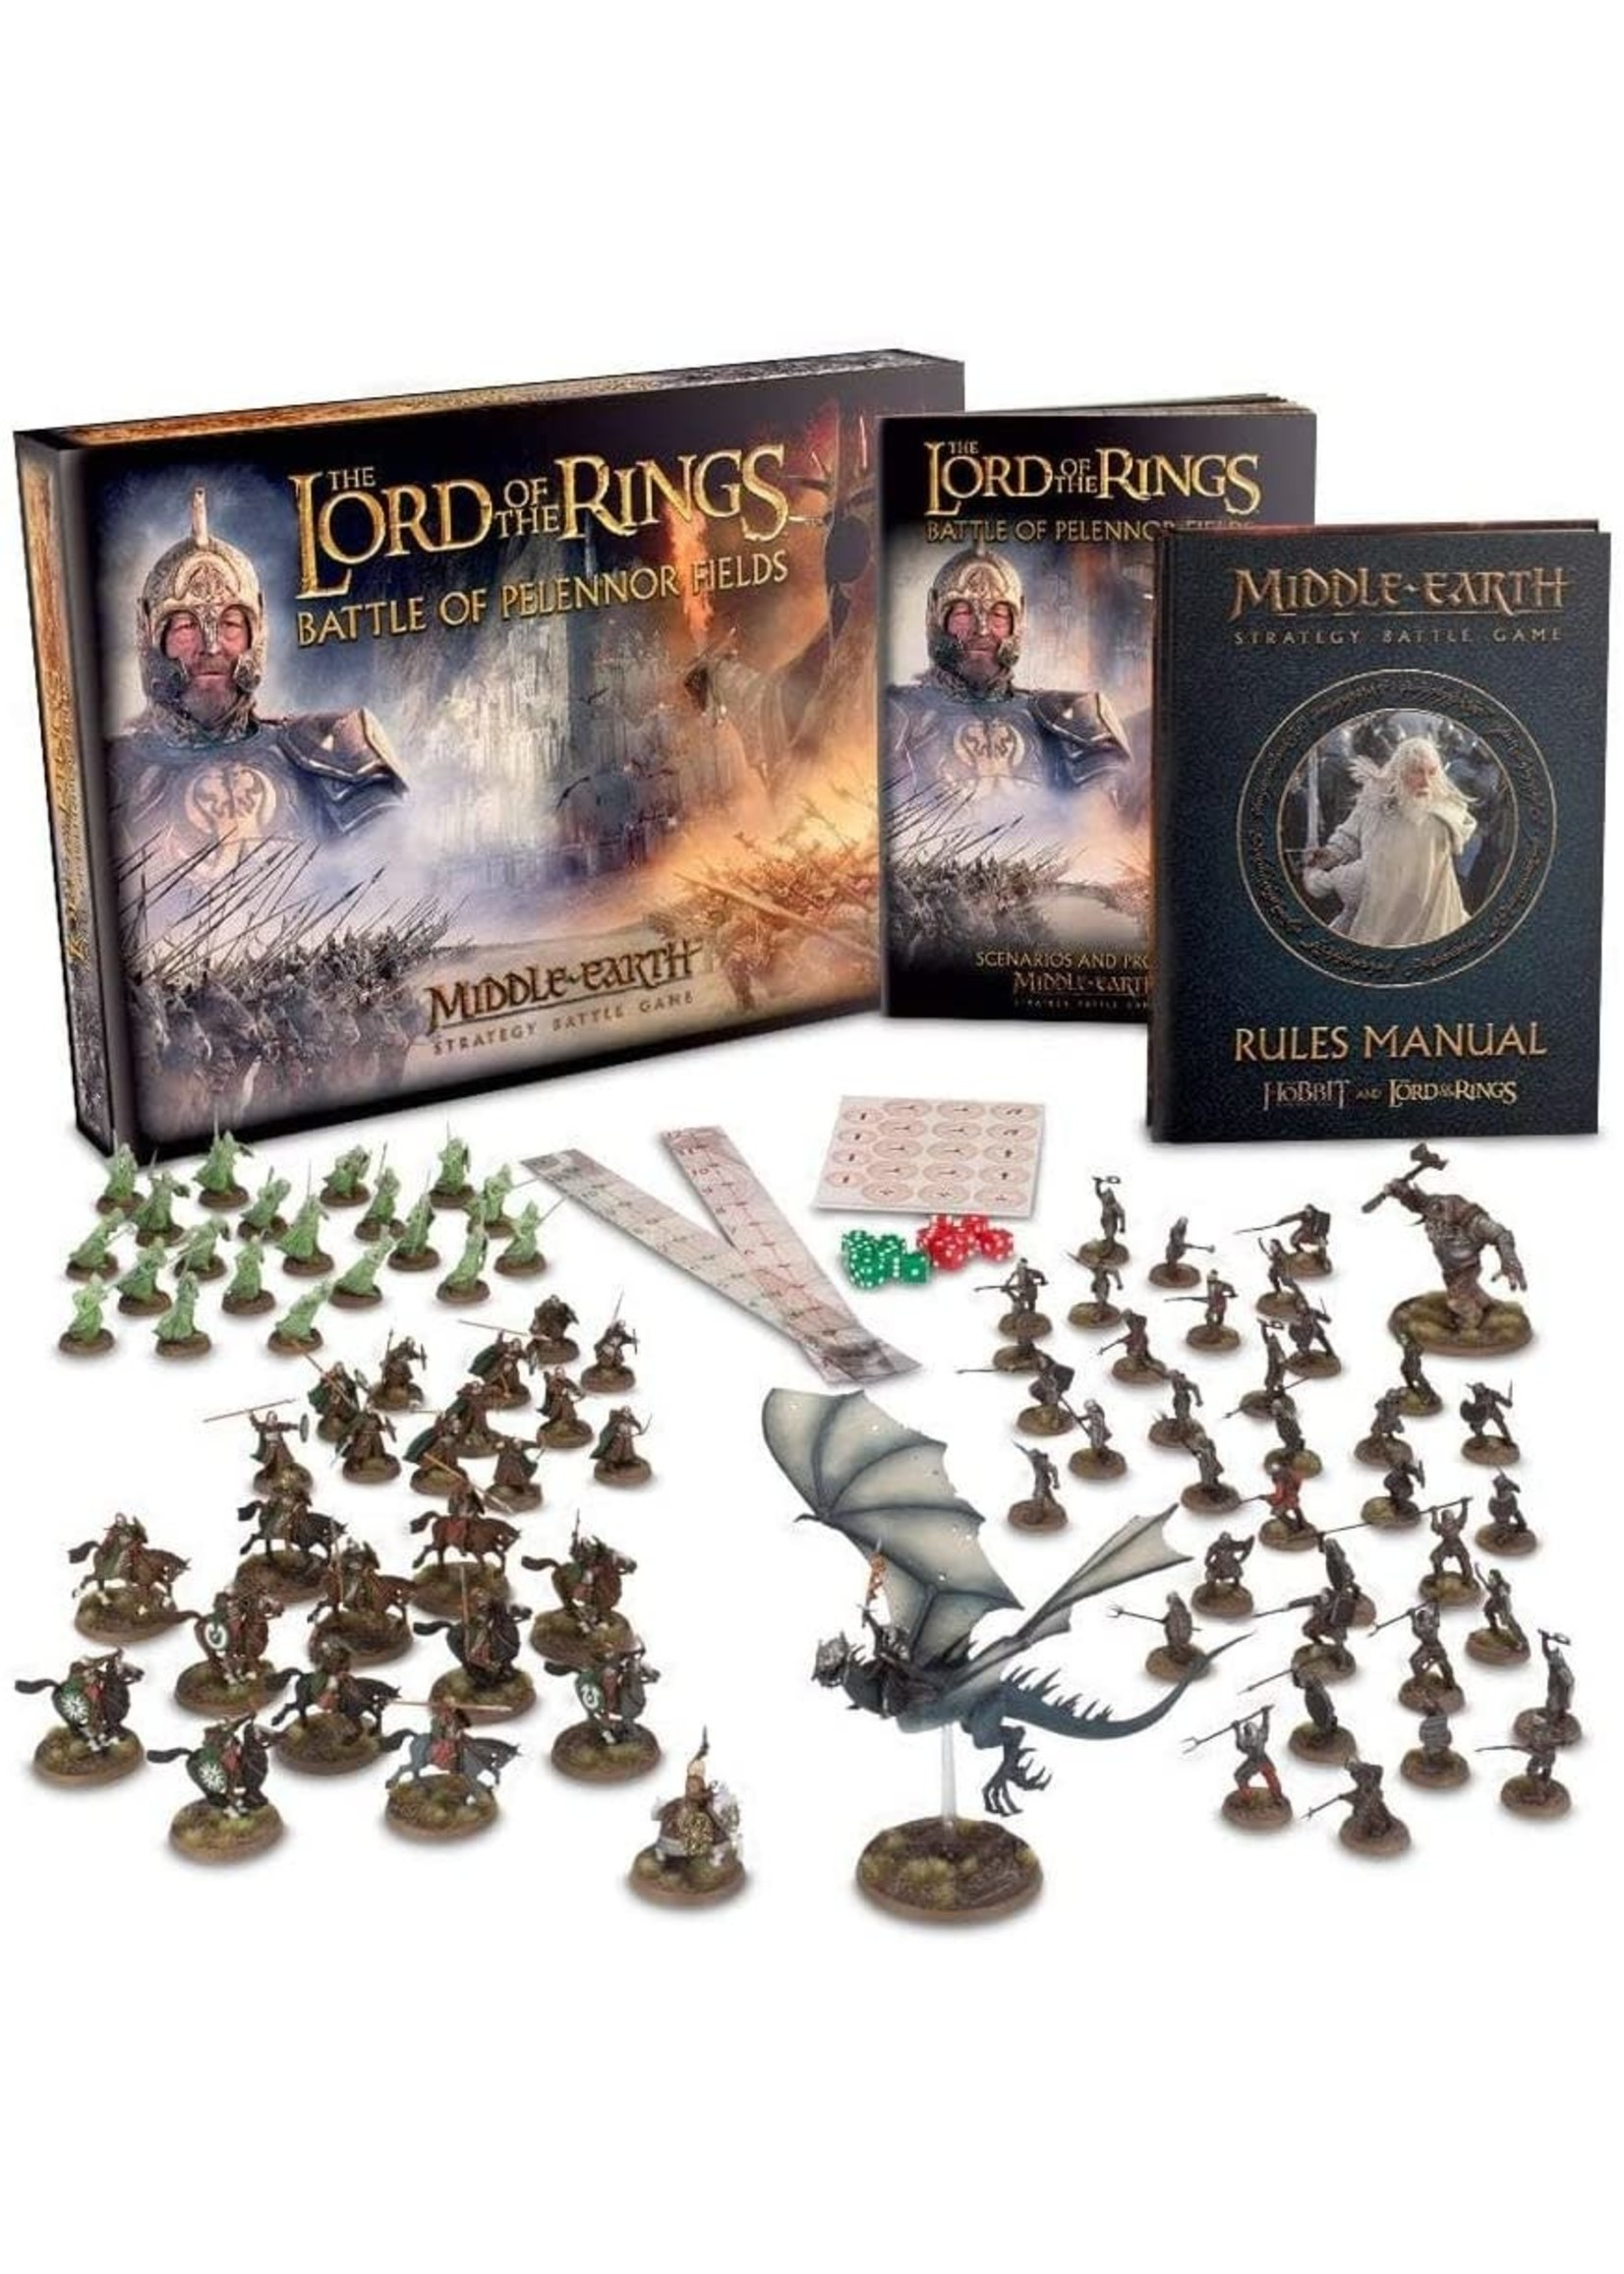 Middle-earth™ Strategy Battle Game The Lord of the Rings Battle of Pelennor Fields